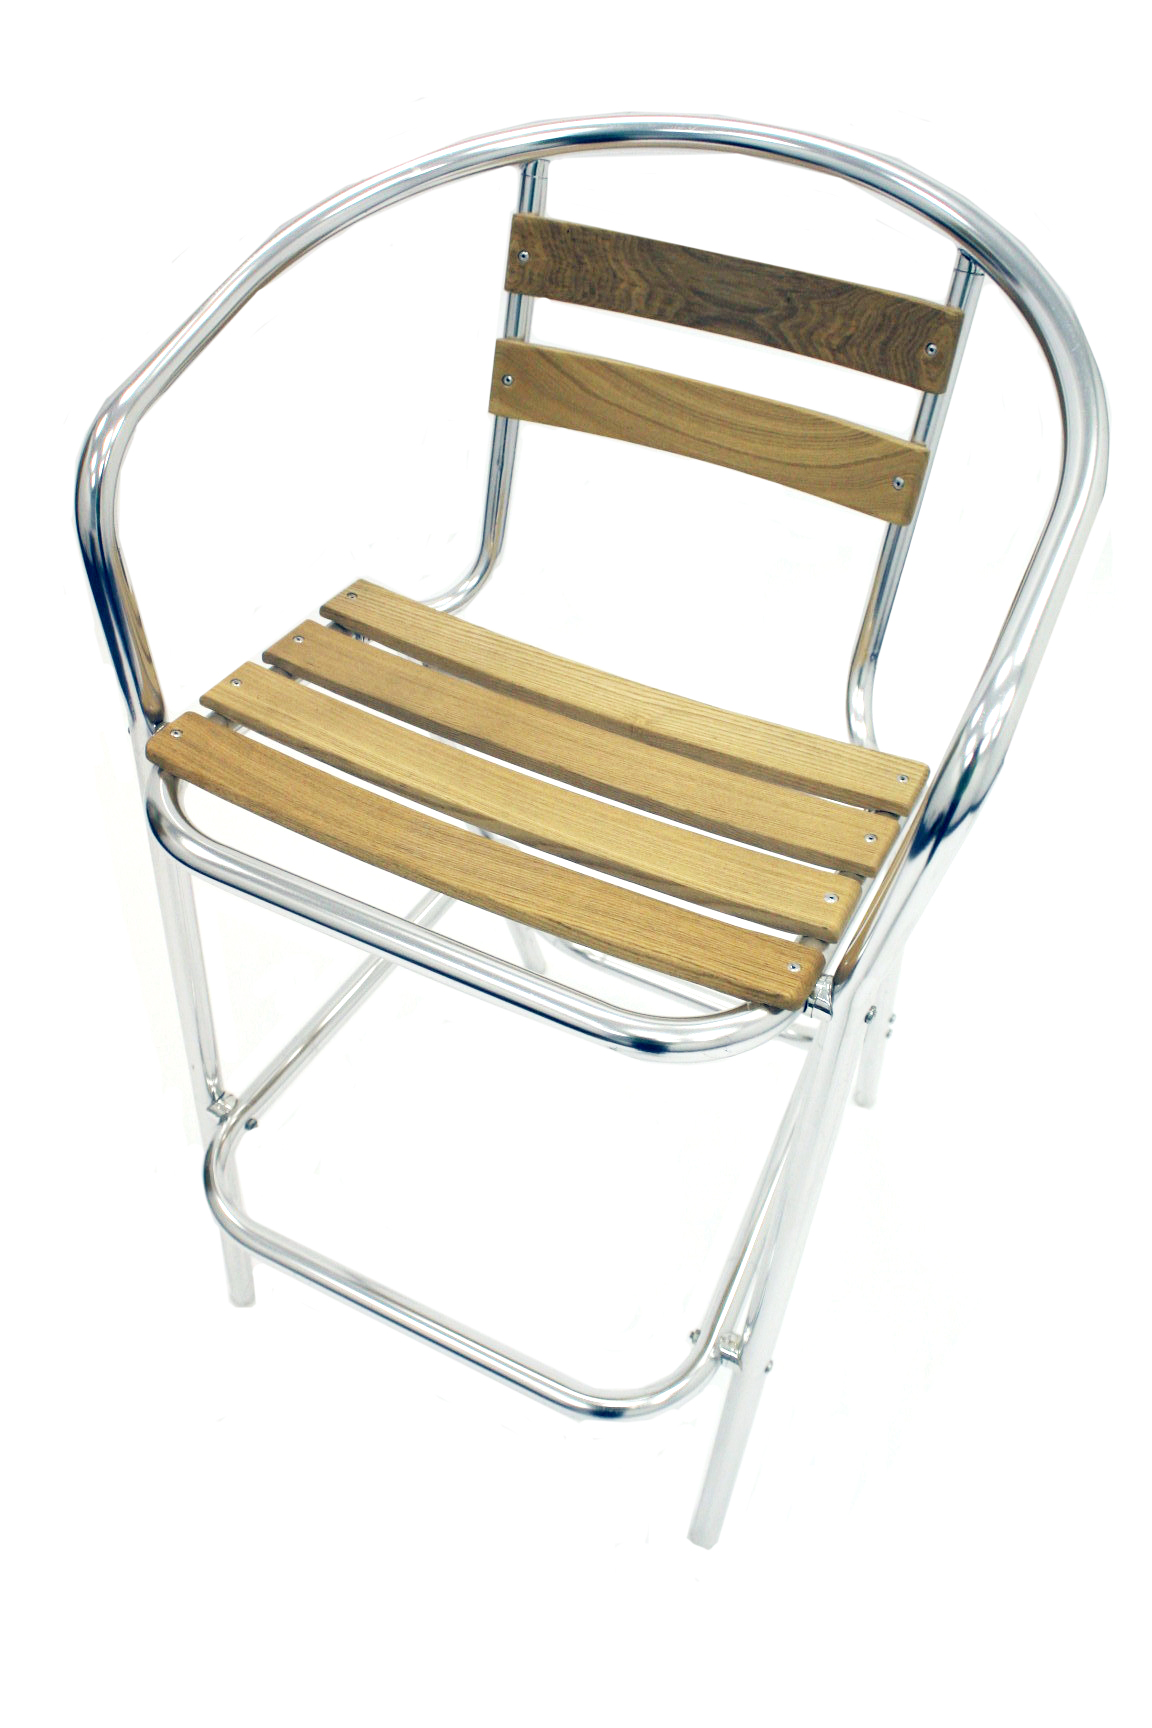 Lightweight tubular aluminium frame with an ash wood seat and back. BE Event Hire